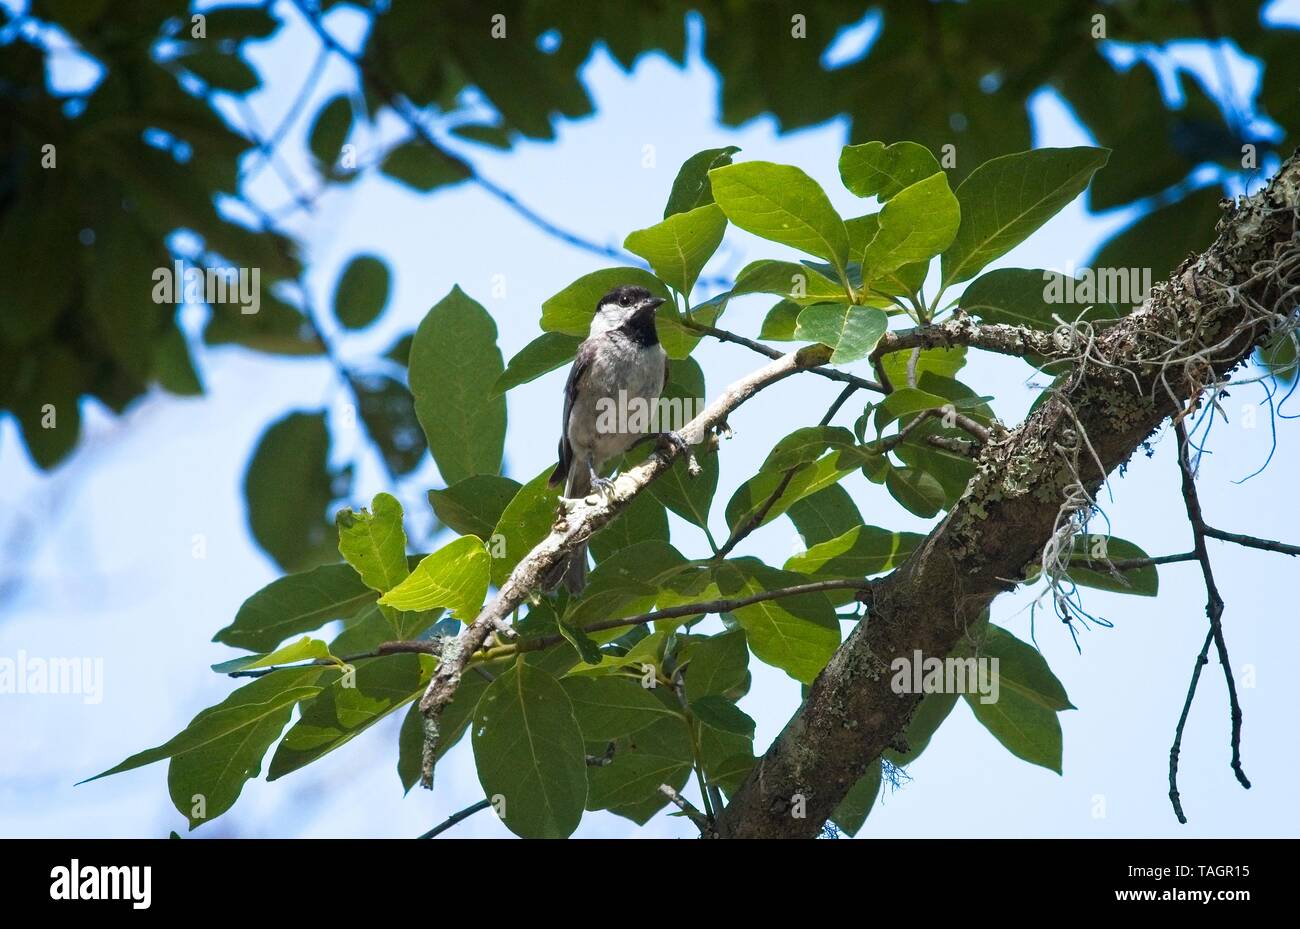 Carolina Chickadee Bird - Stock Image